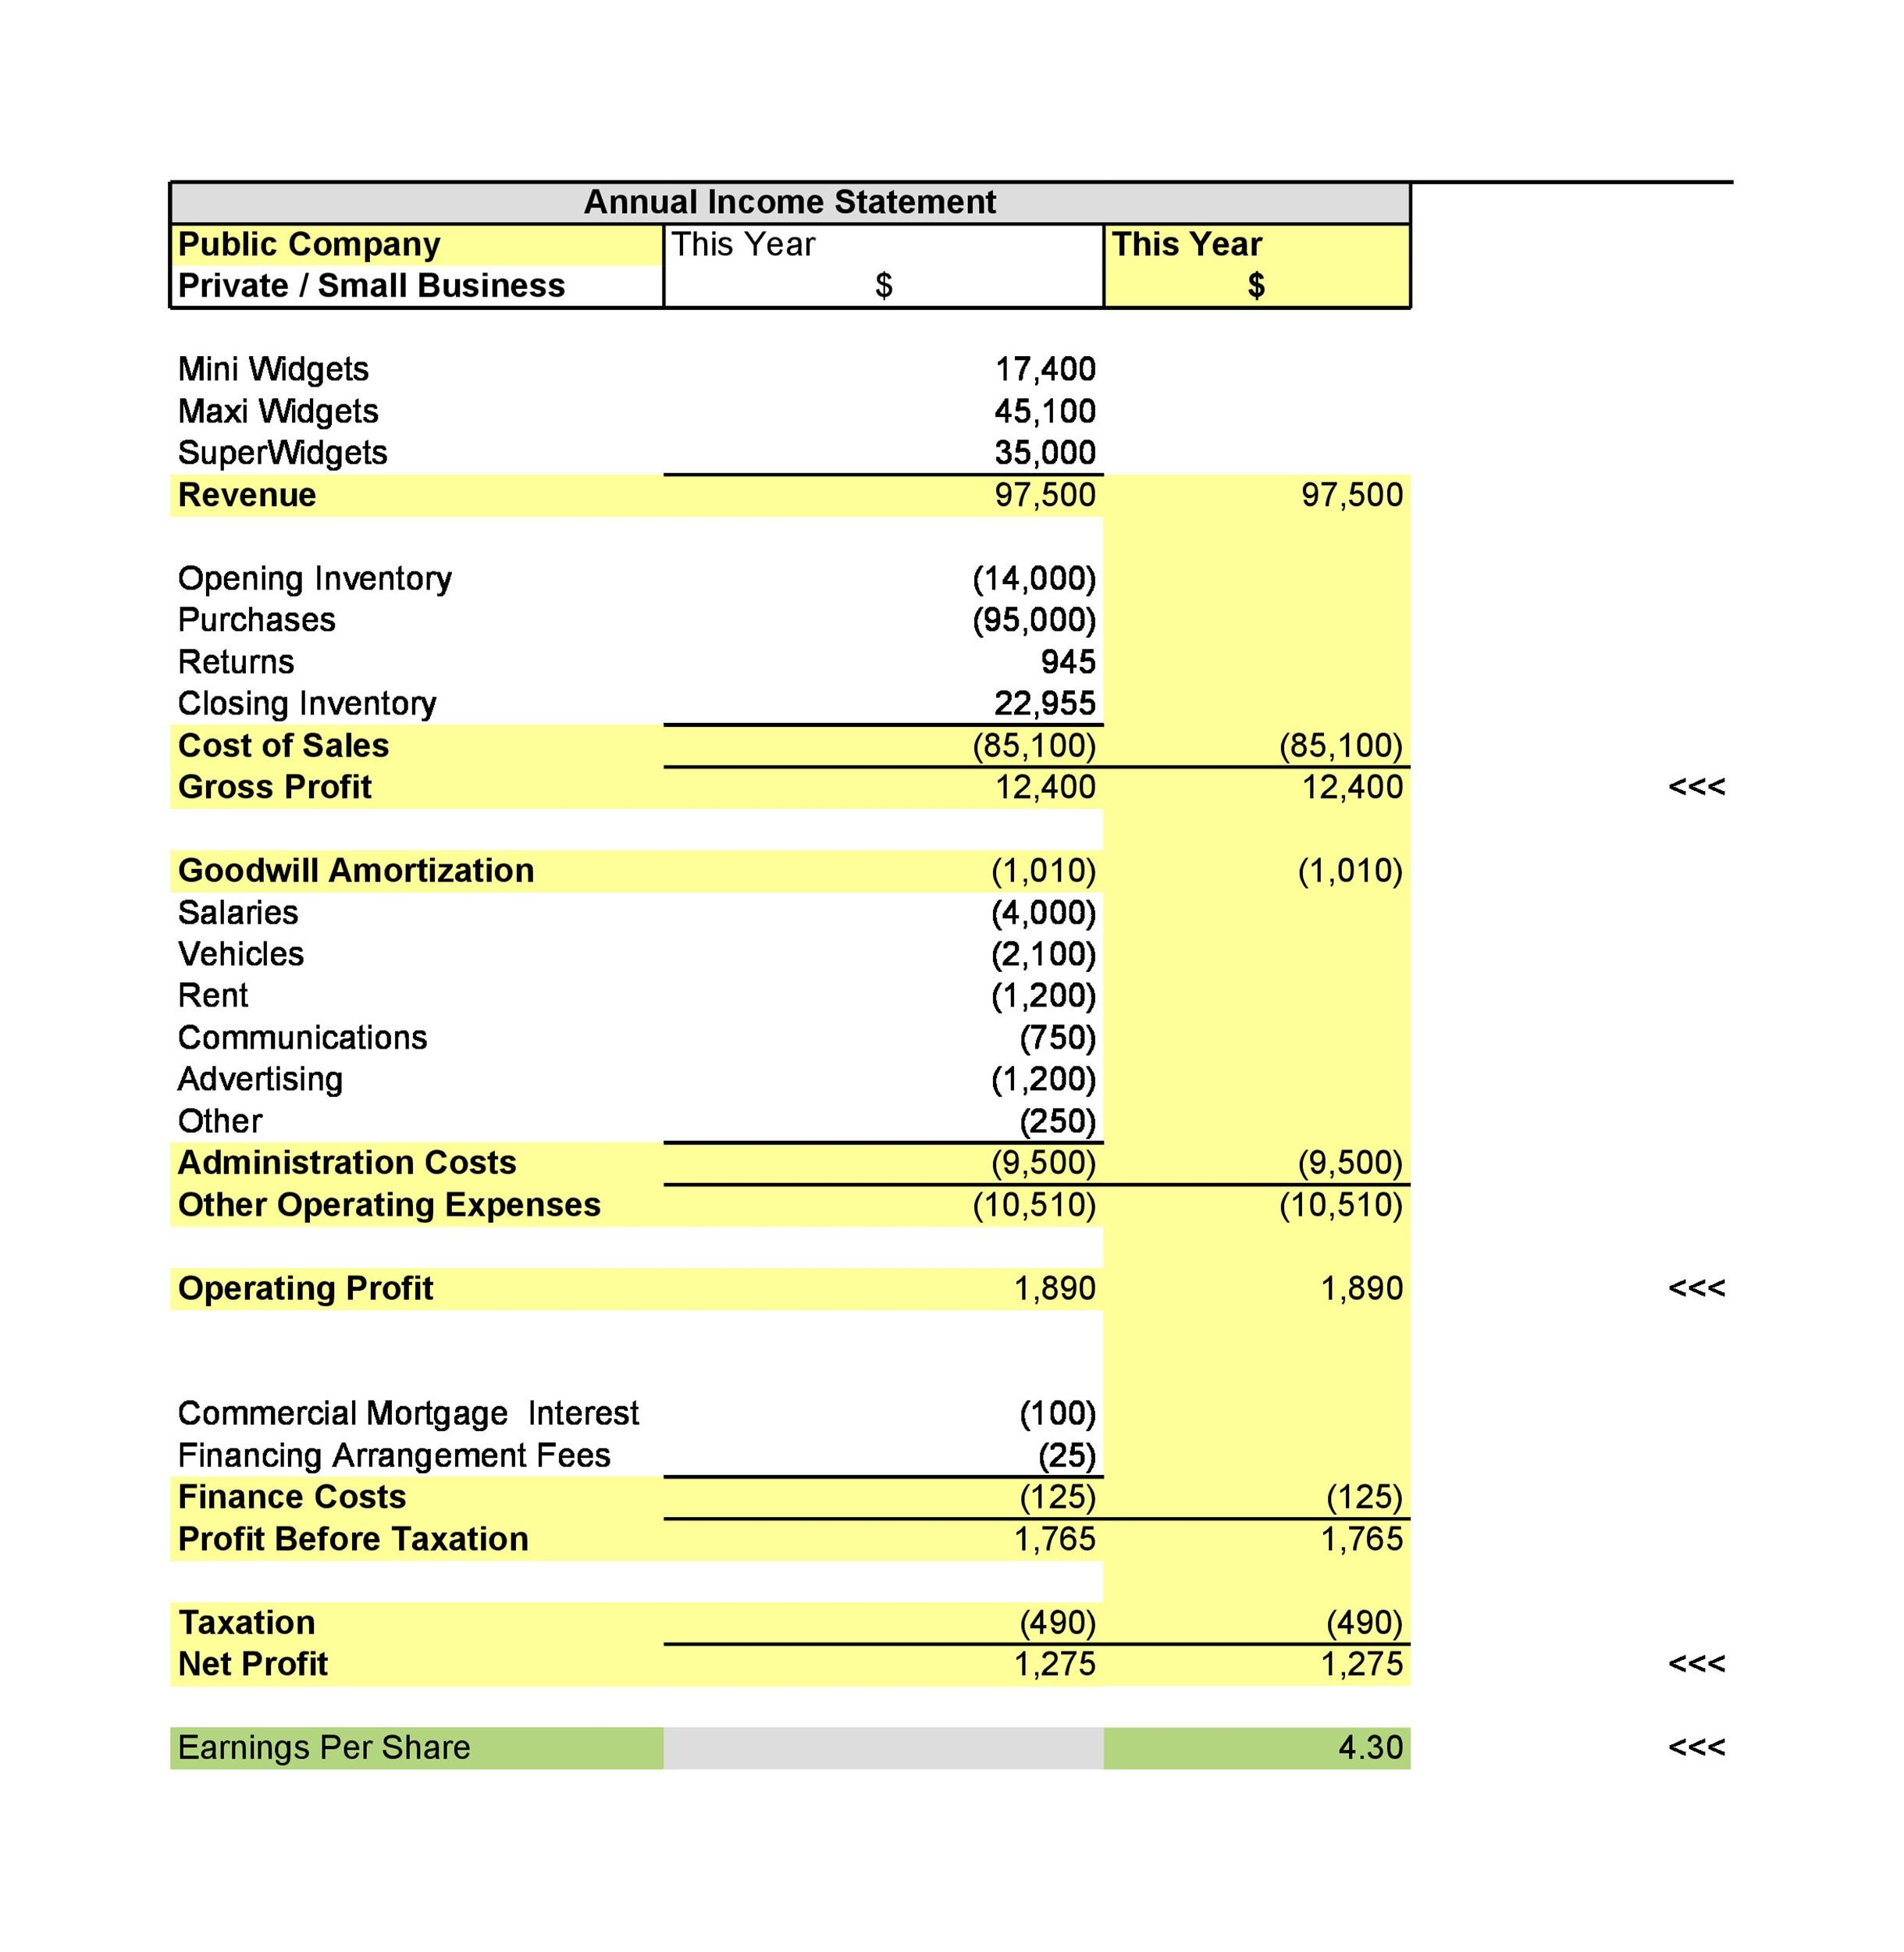 27 Income Statement Examples  Templates (Single/Multi step, Pro-forma)